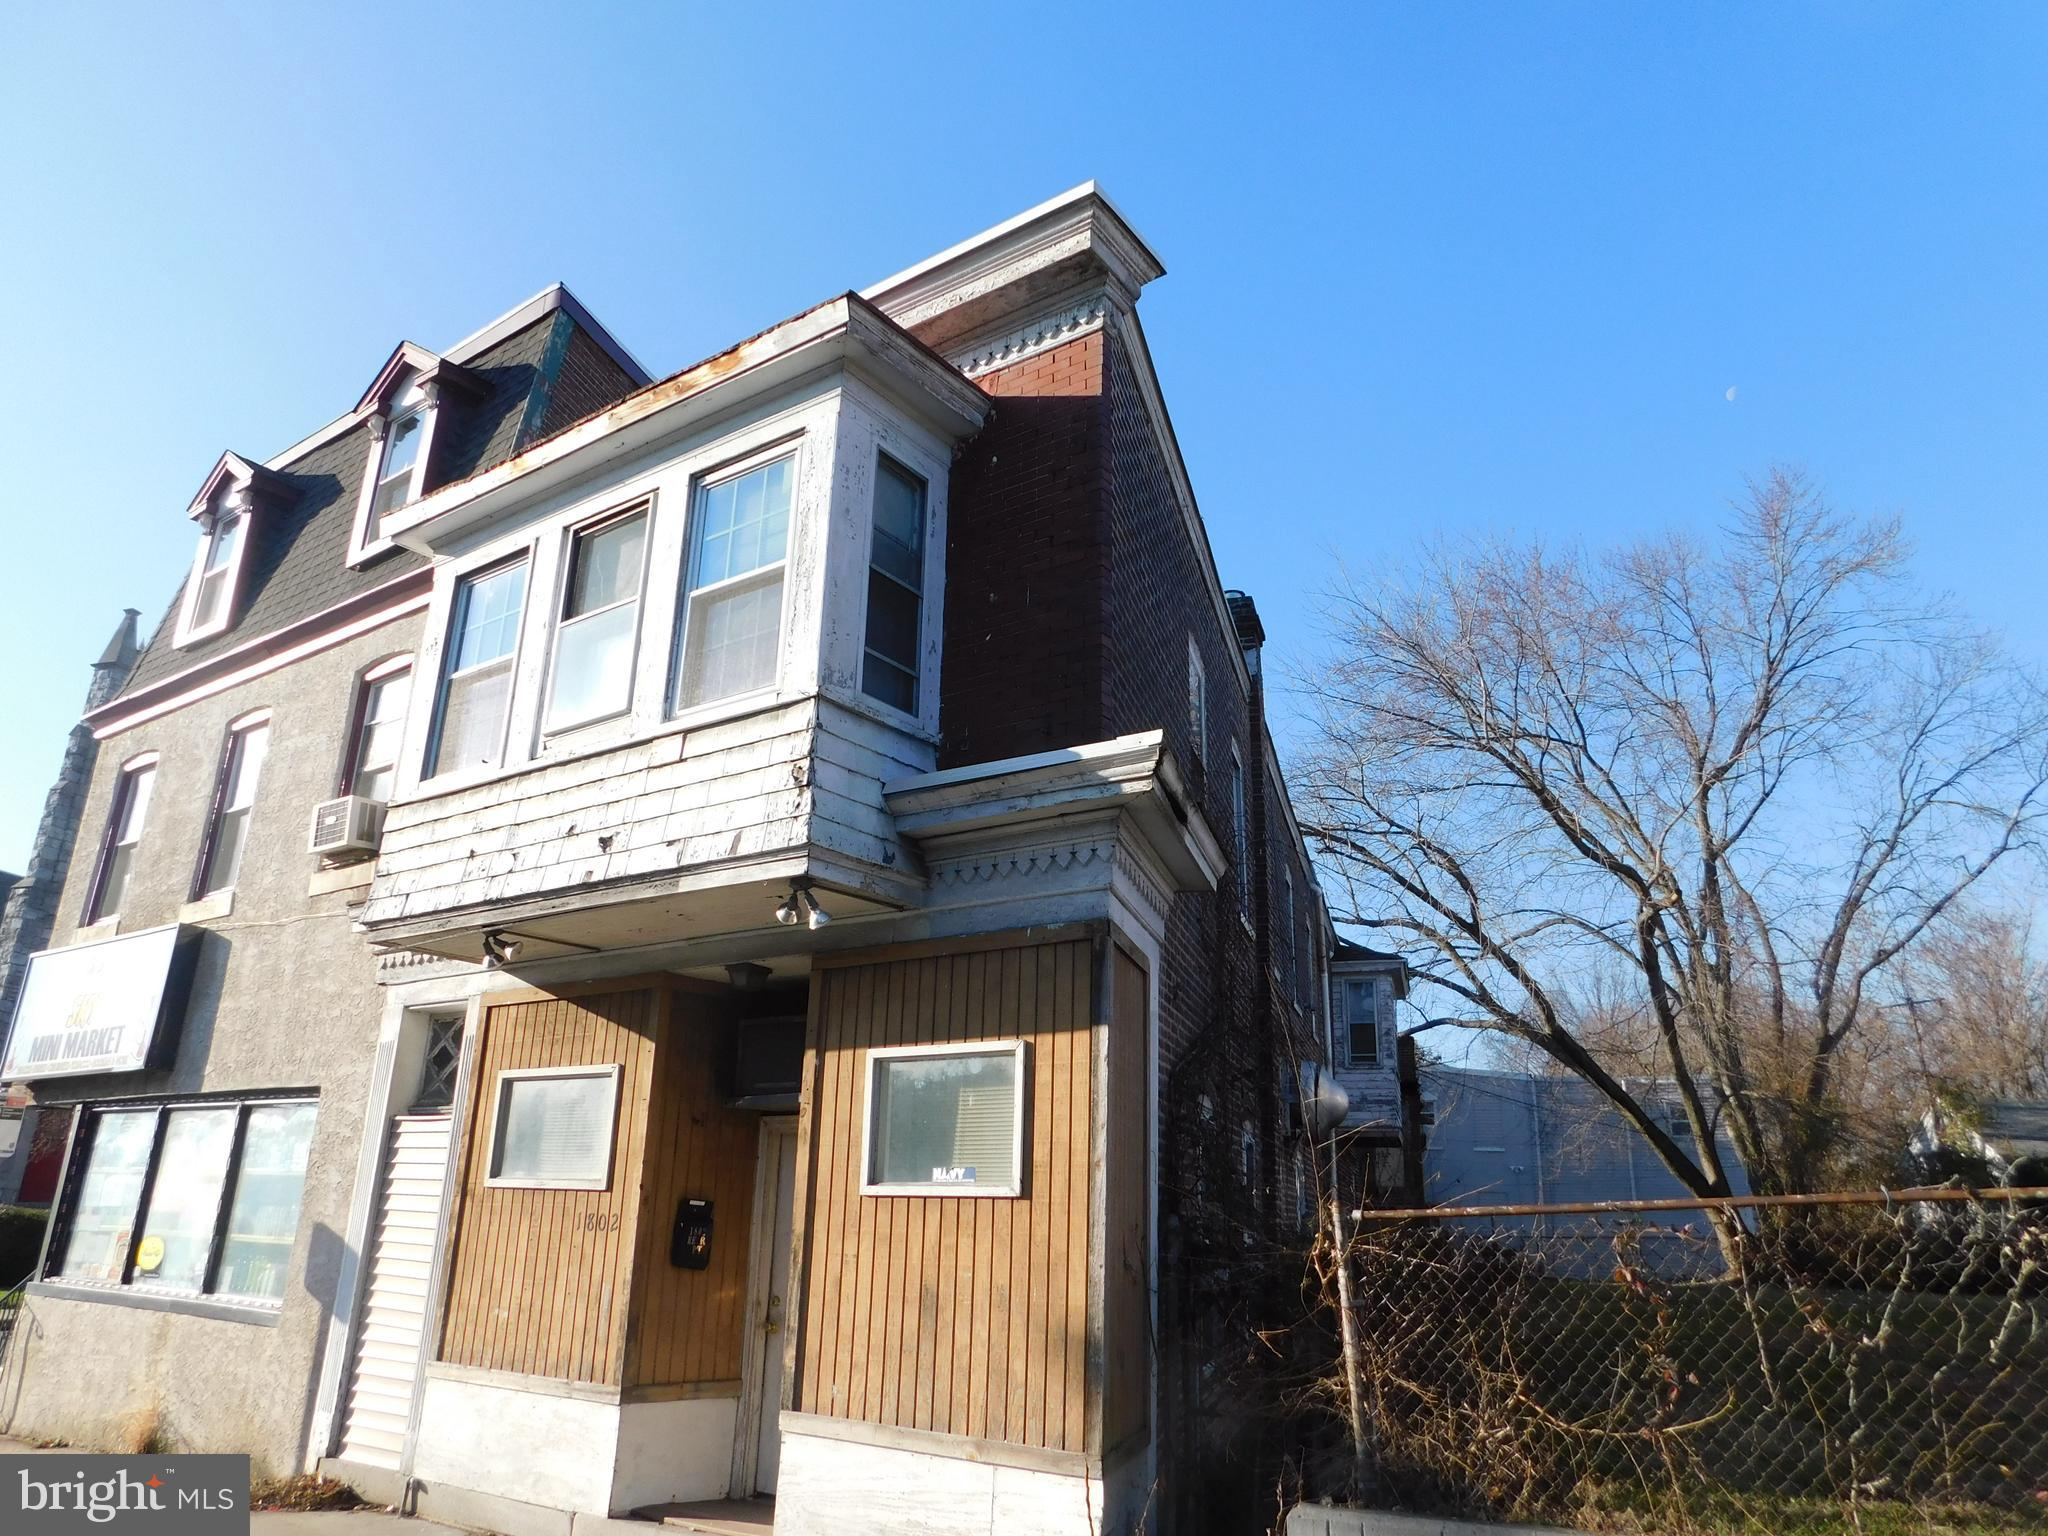 1802 PROVIDENCE AVENUE, CHESTER, PA 19013